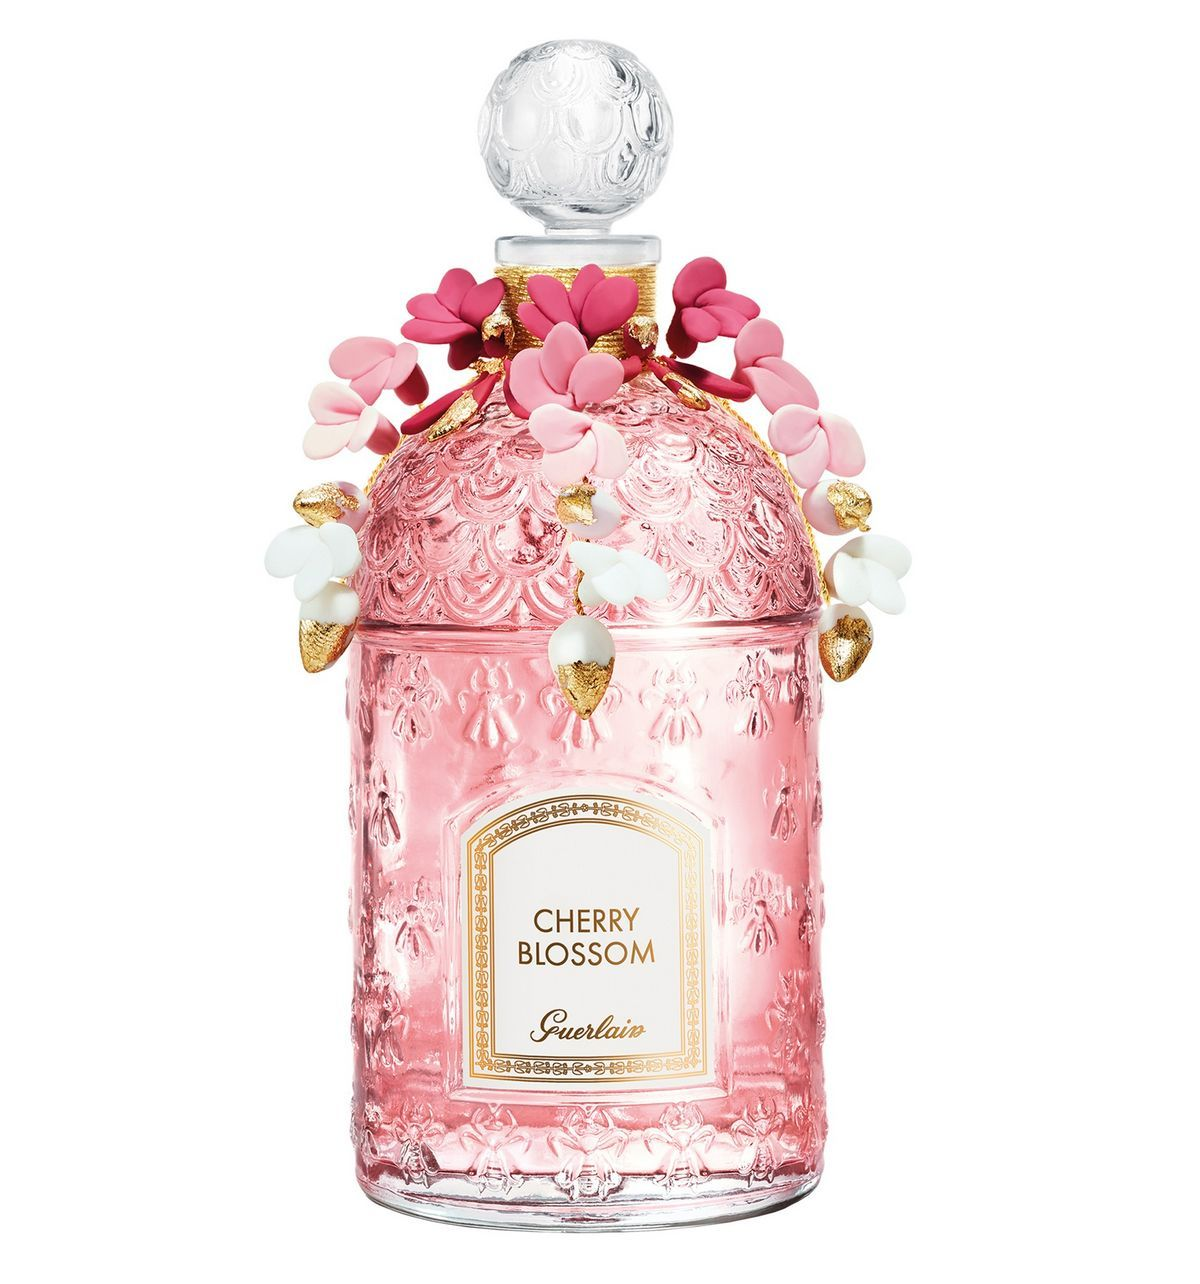 Read Could The Guerlain Cherry Blossom 2020 Millesime Be The Most Attractive Perfume Ever On Luxurylaunches Perfume Floral Fragrance Perfume Scents